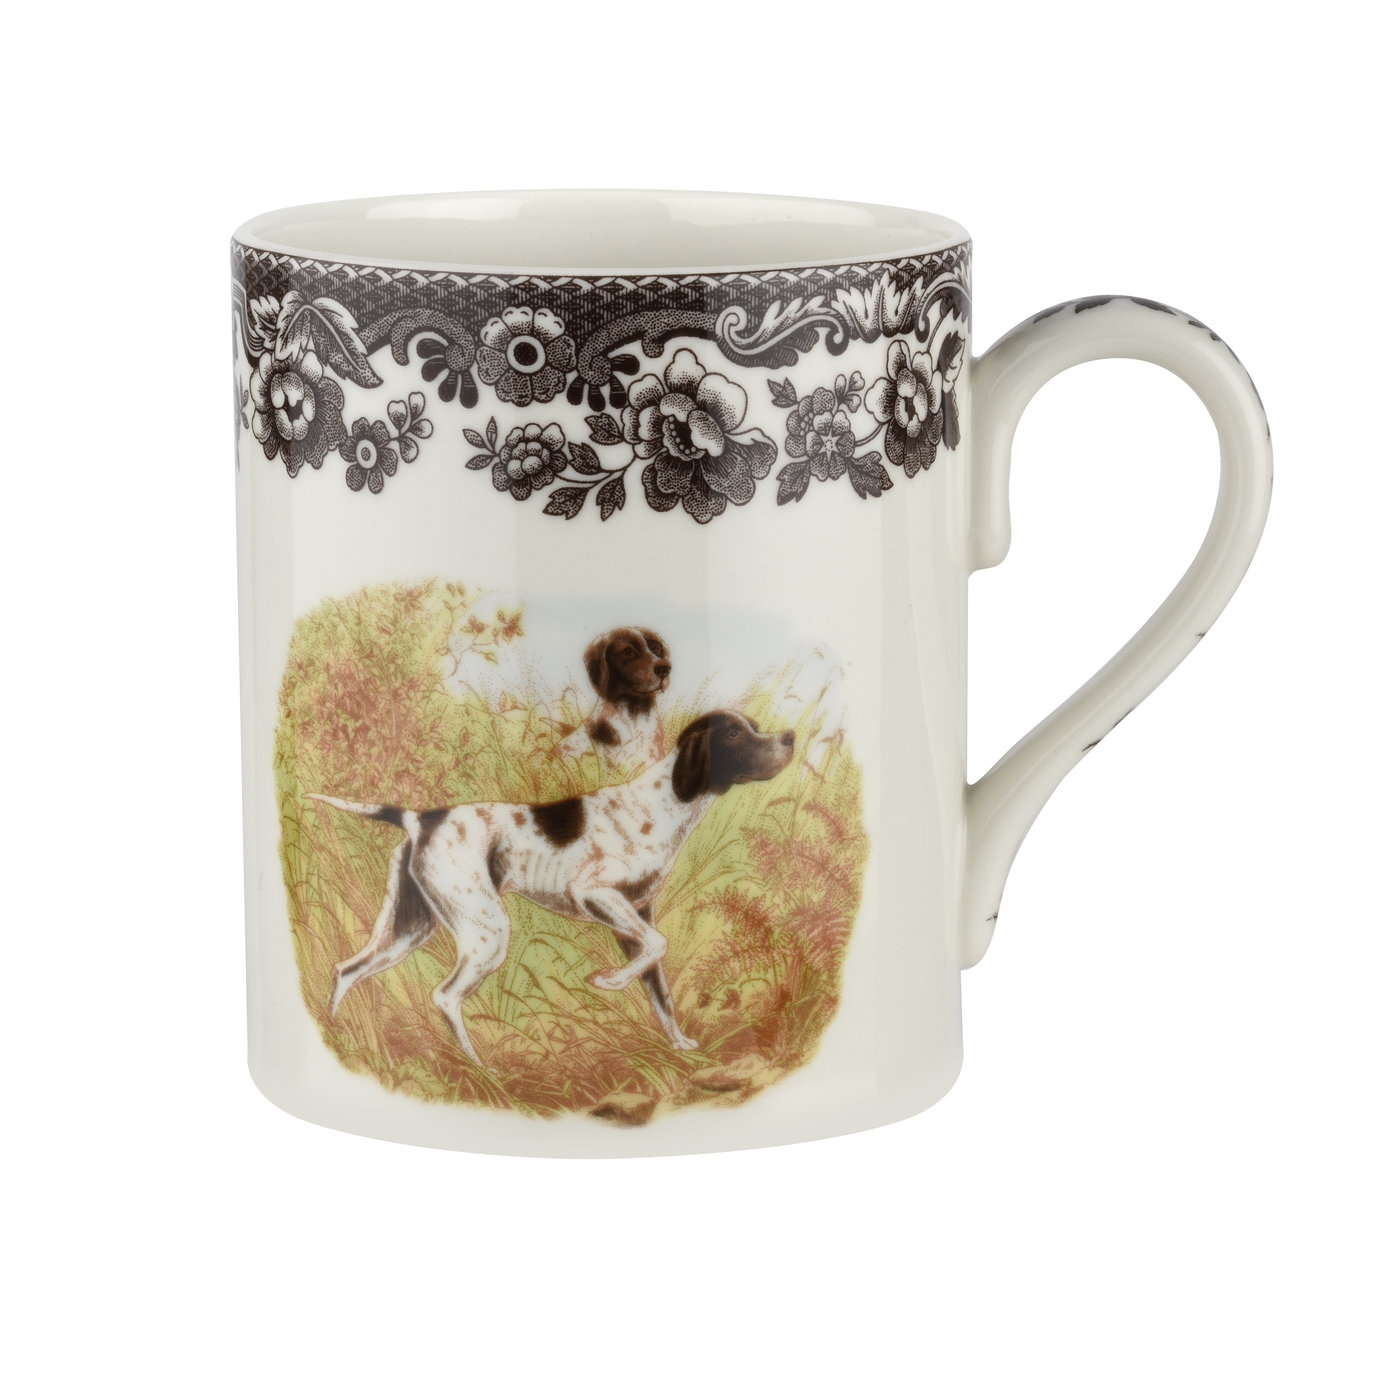 Spode Woodland 16 oz Mug (Flat Coated Pointer) image number 0